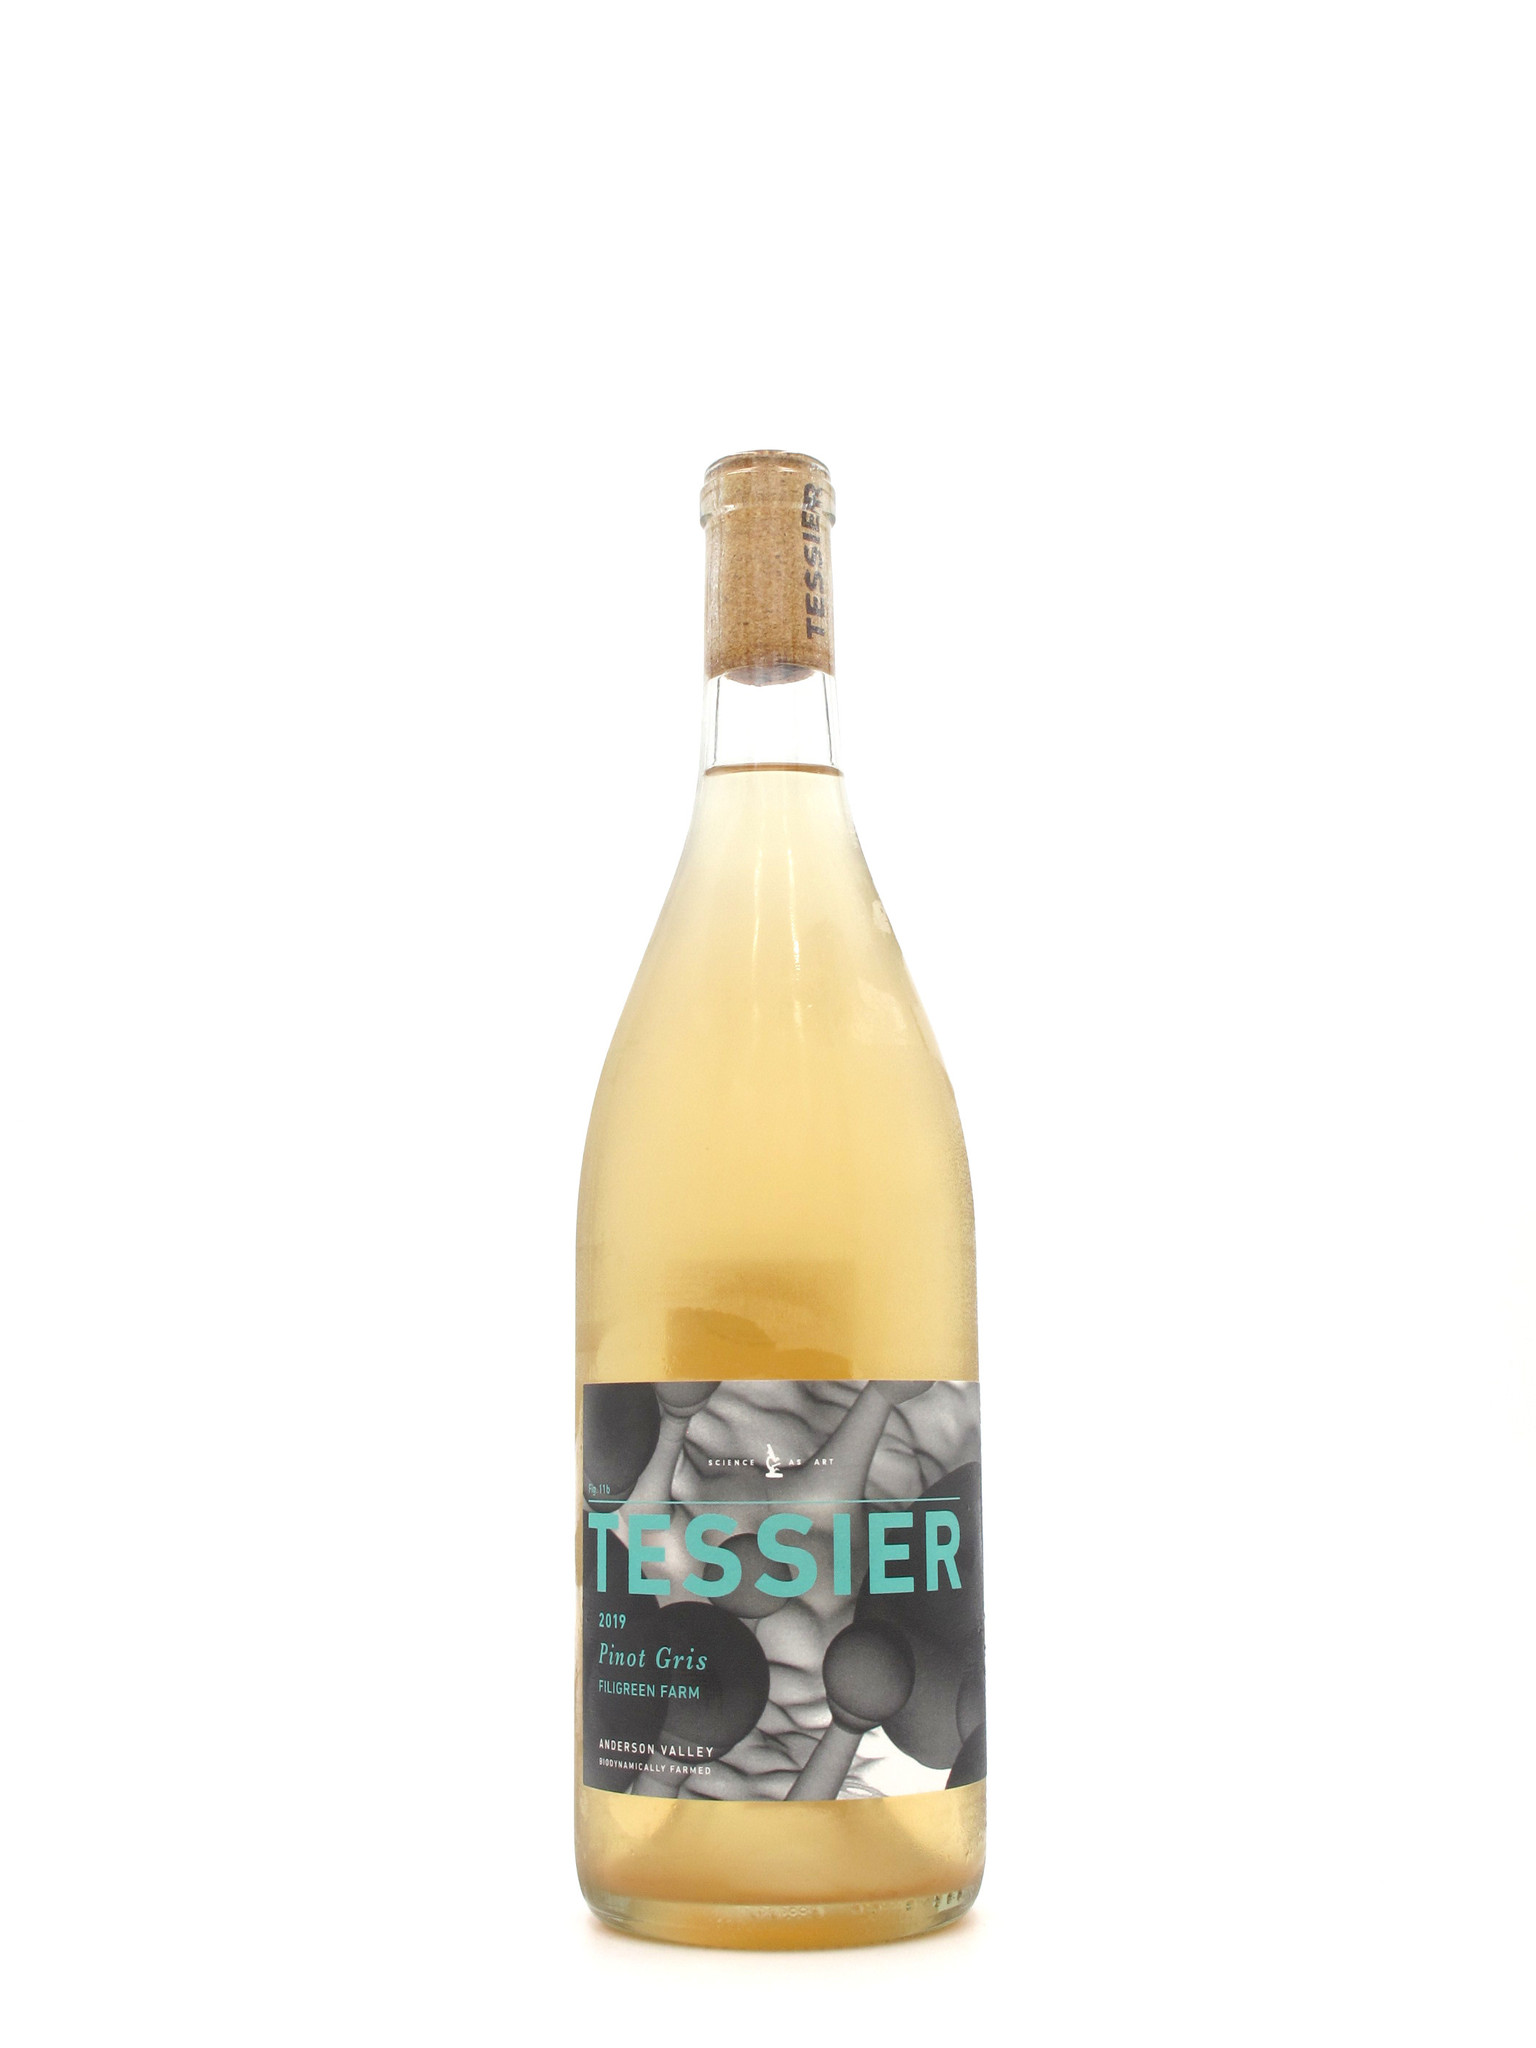 Tessier 2019 Tessier Winery Filigreen Farm Anderson Valley Pinot Gris 750ml